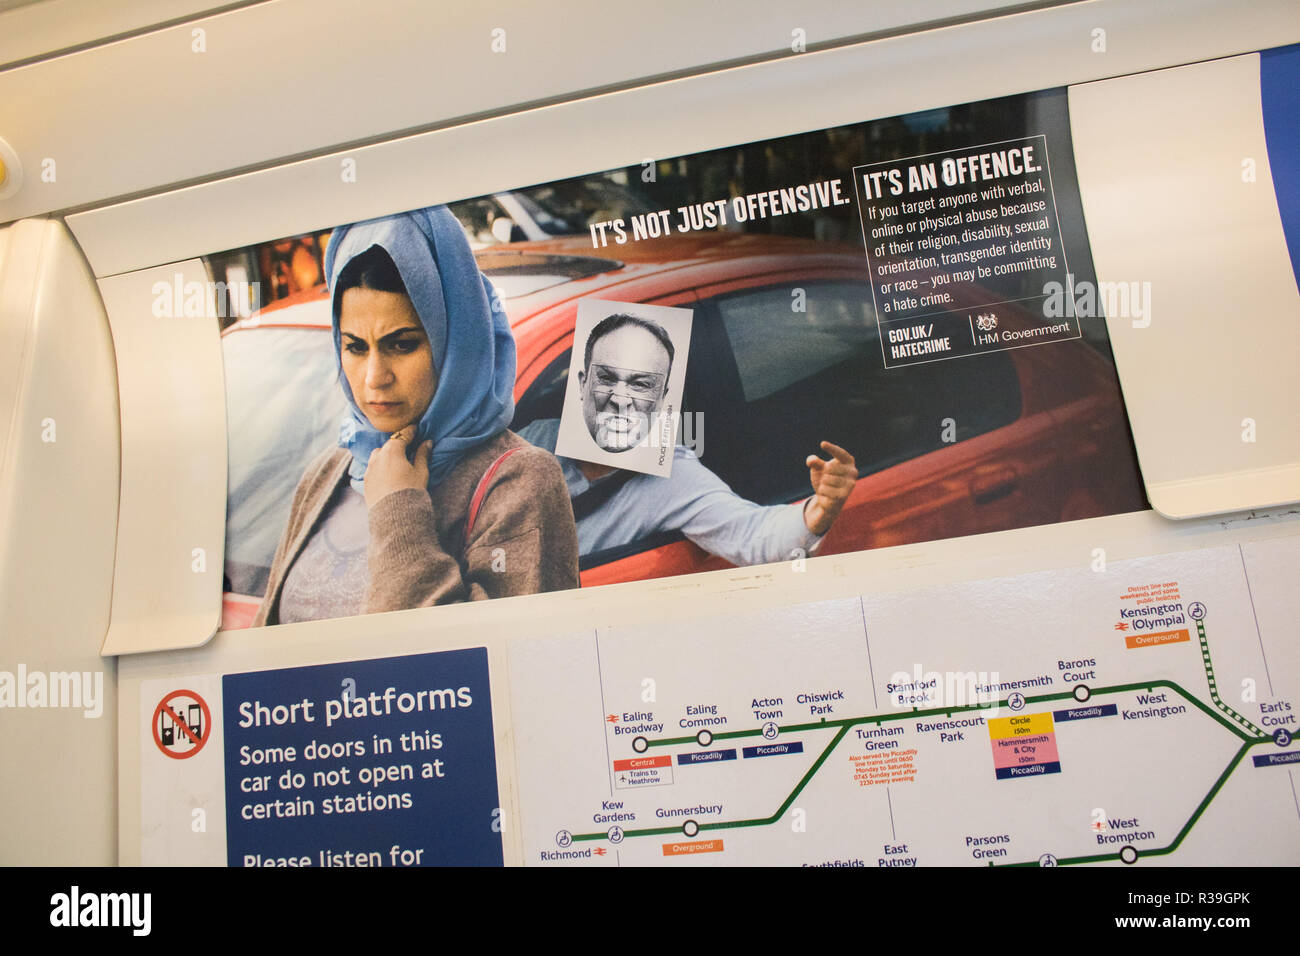 London UK. 22nd November 2018. A poster on the London Underground as part of a government Anti Hatecrime campaign against online and , physical abuse based on religion, transgender identity and race Credit: amer ghazzal/Alamy Live News - Stock Image